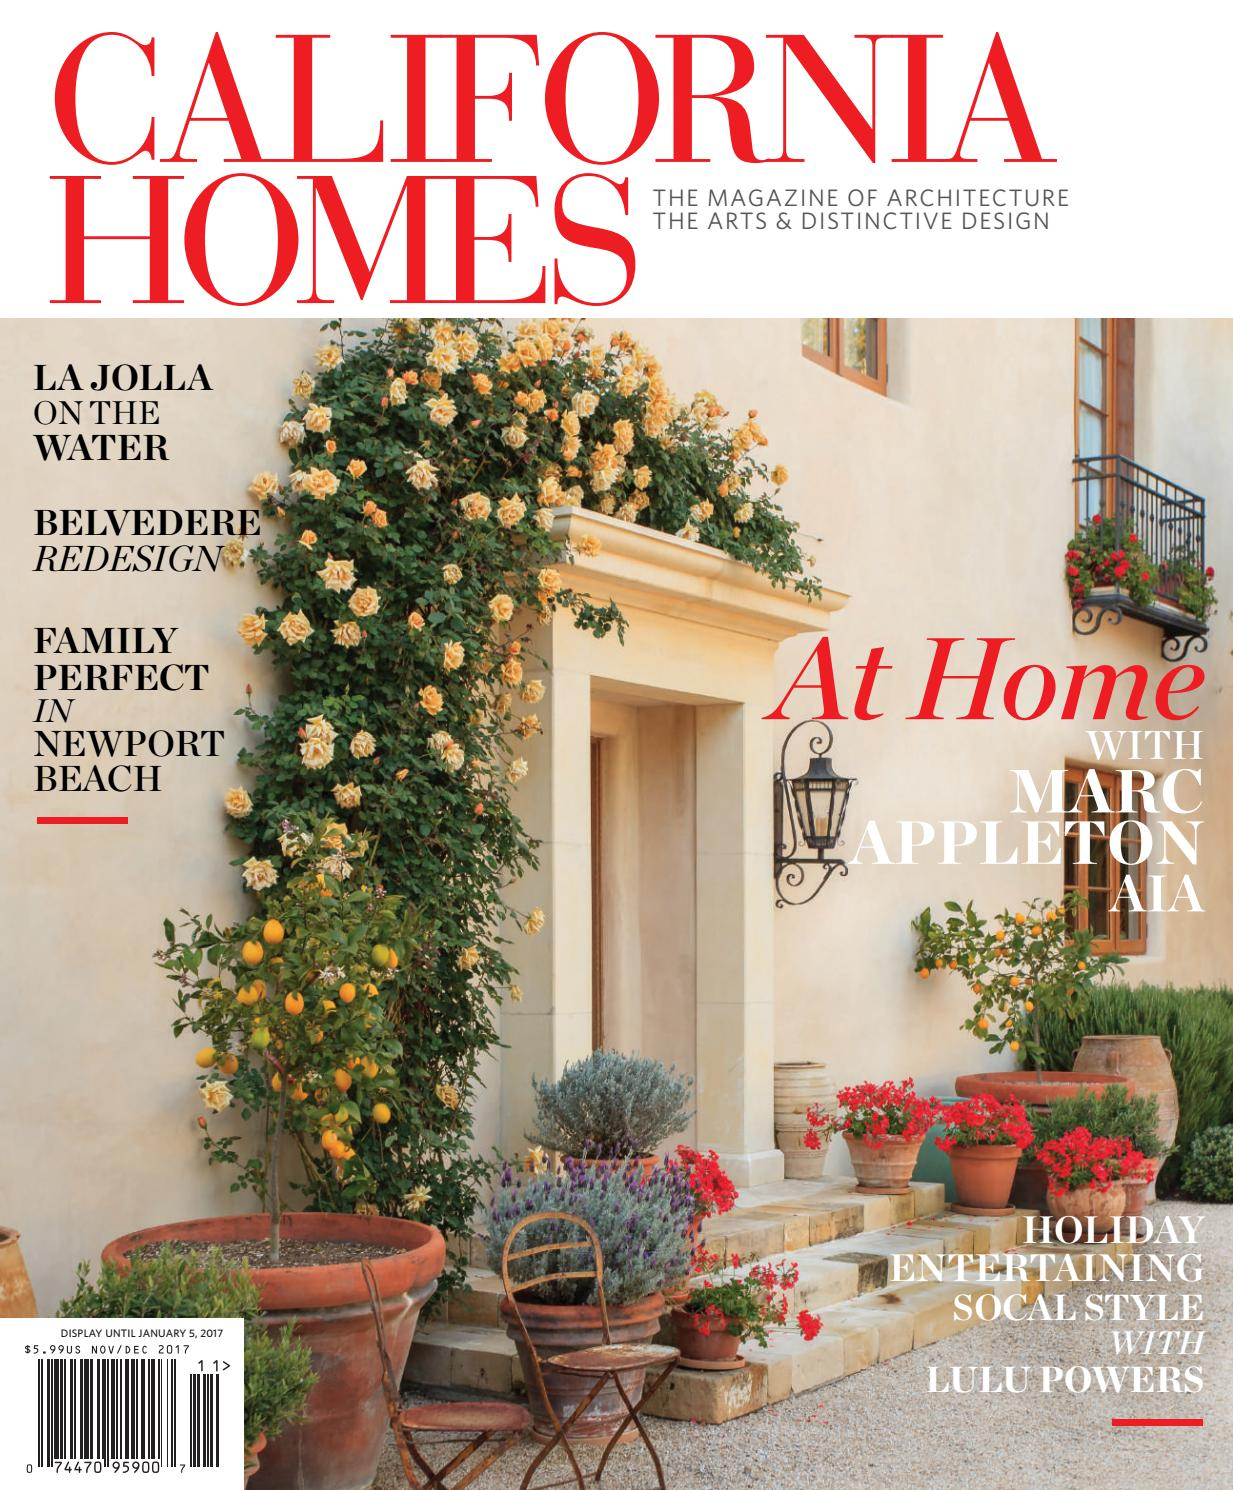 California homes november december 2017 by california homes magazine issuu